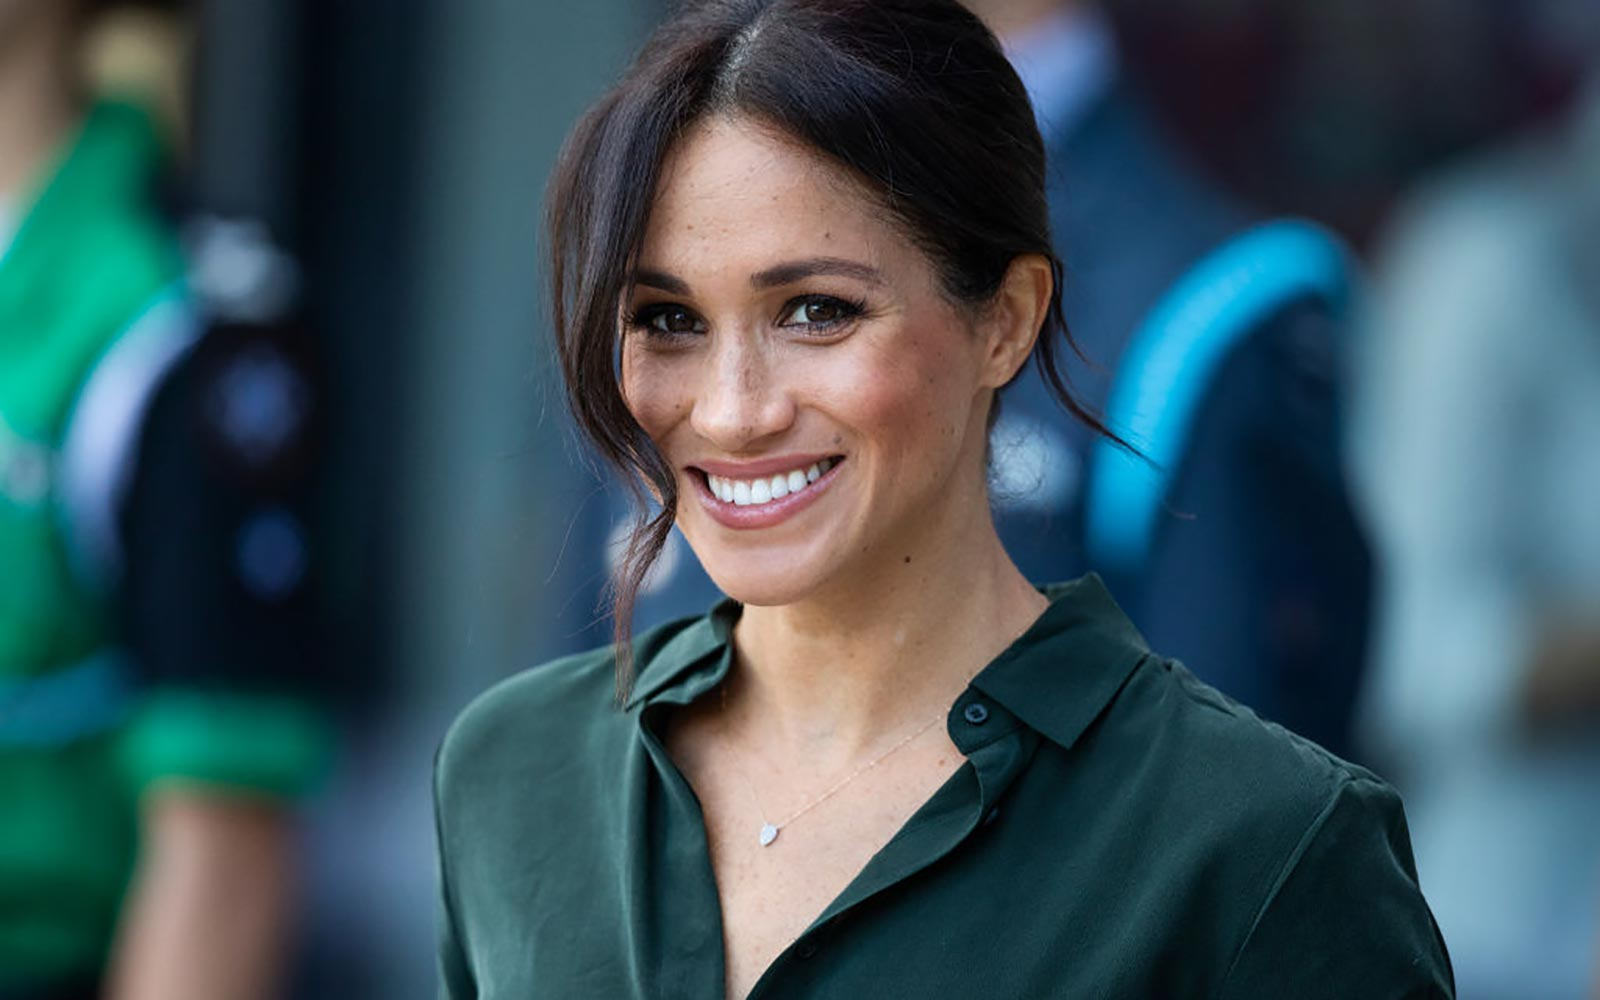 Meghan Markle wasn't 'A-list' enough for designers